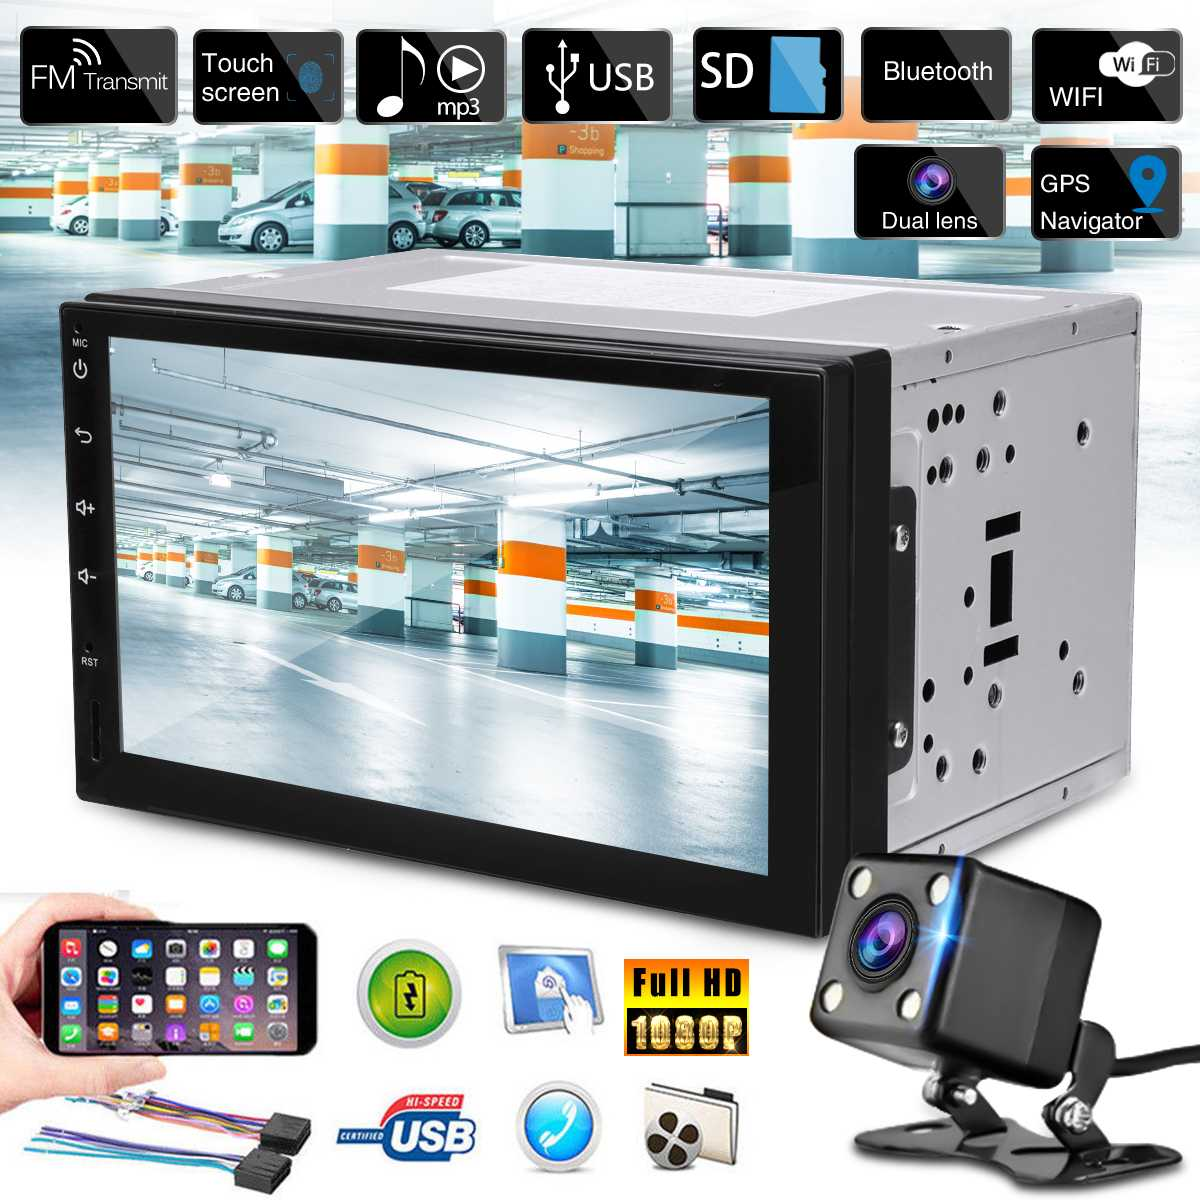 Autoradio bluetooth 7 ''Android 8.0 Autoradio Navigation GPS bluetooth USB SD 2 Din Autoradio + Image inversée